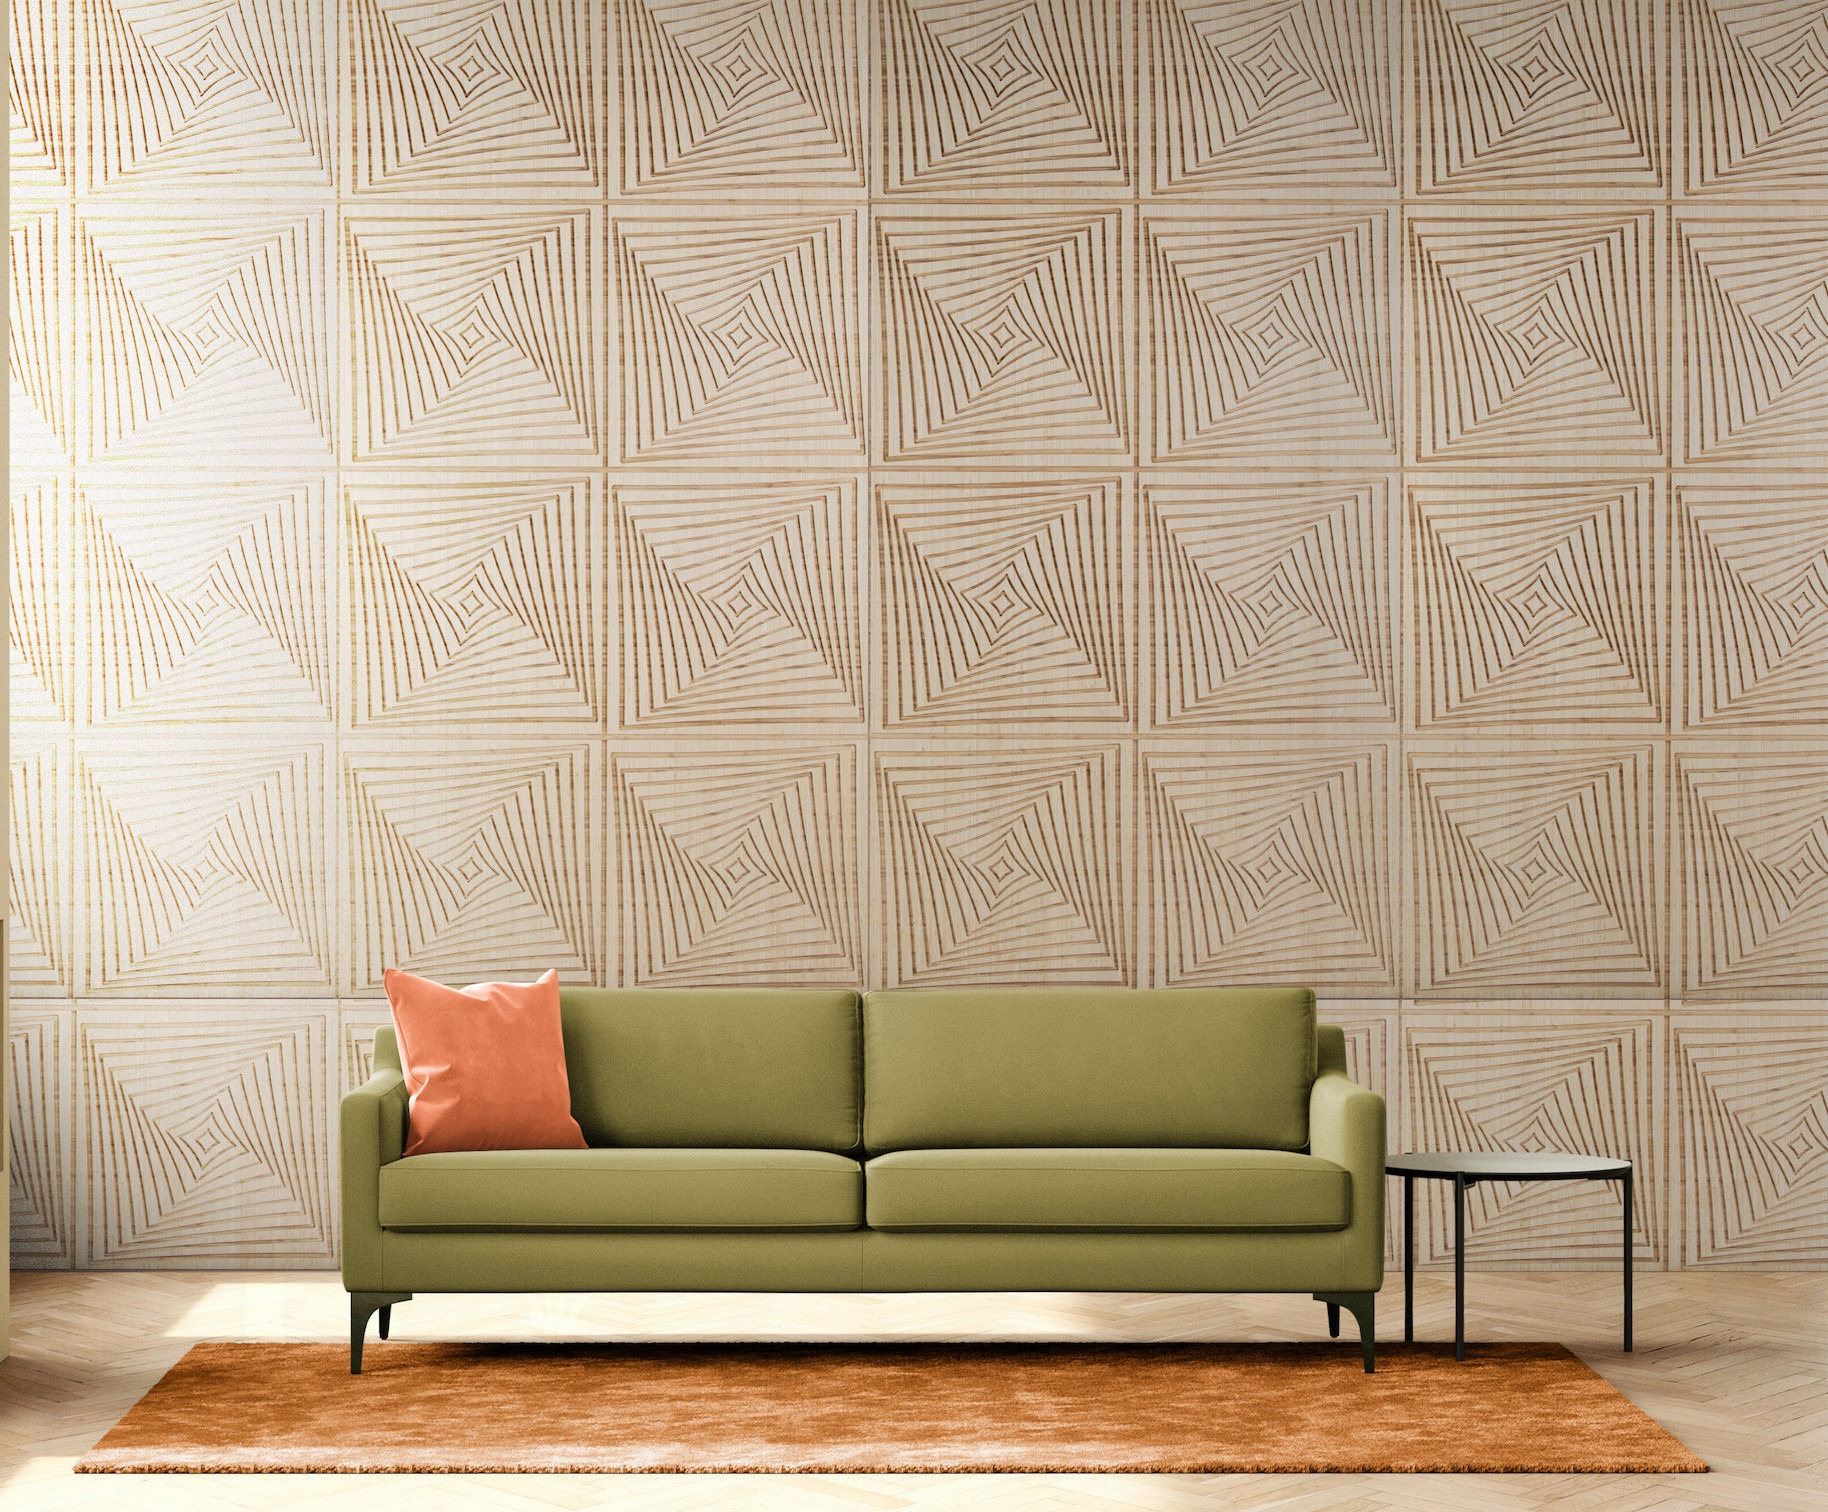 green couch with Amber wall paneling